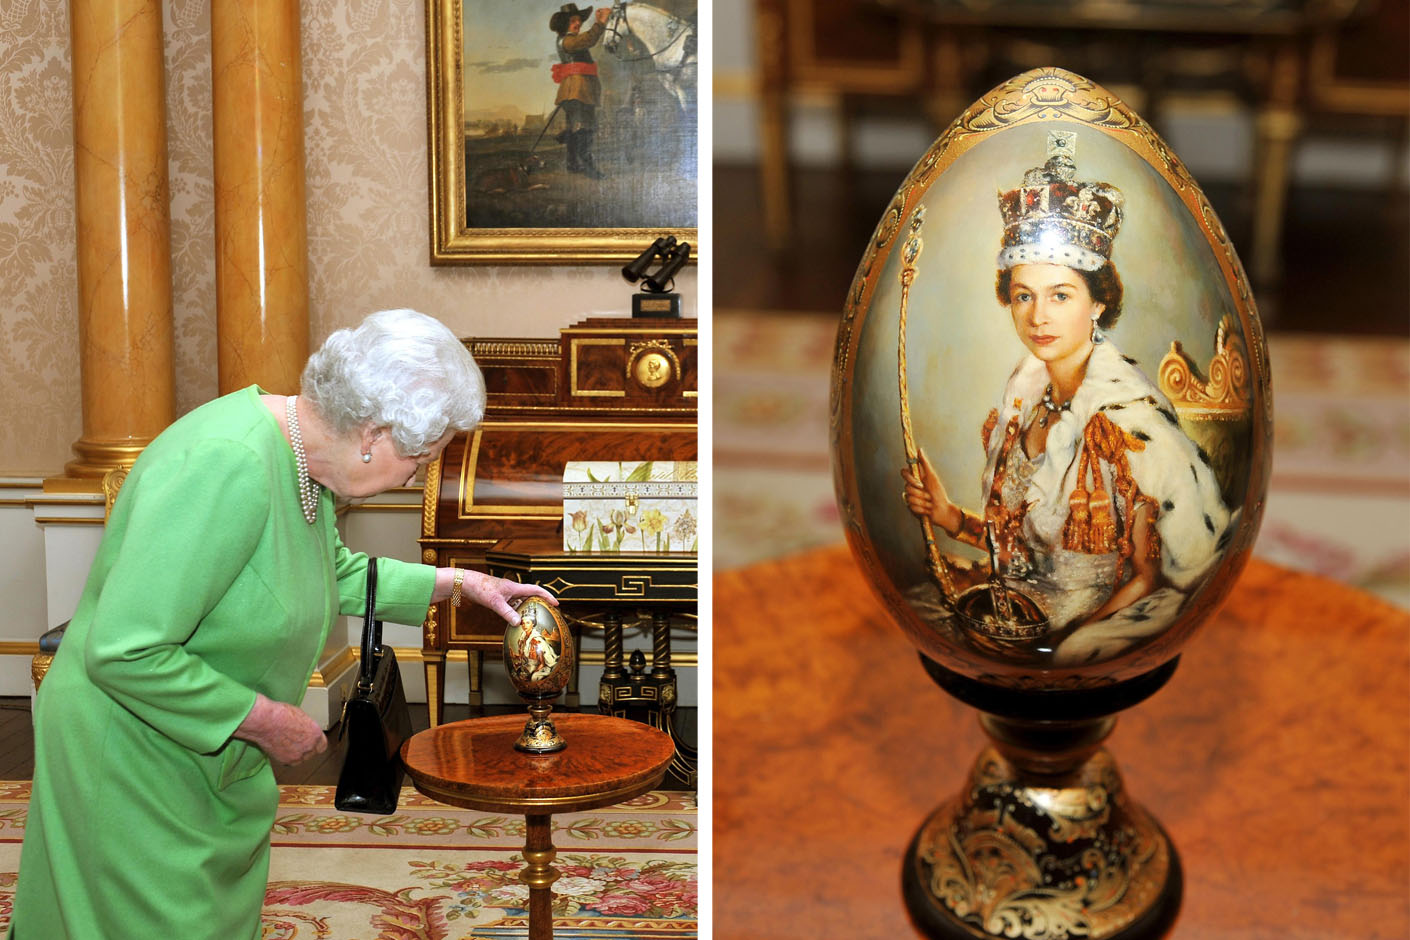 Wooden Egg given as a gift to The Queen in 2010